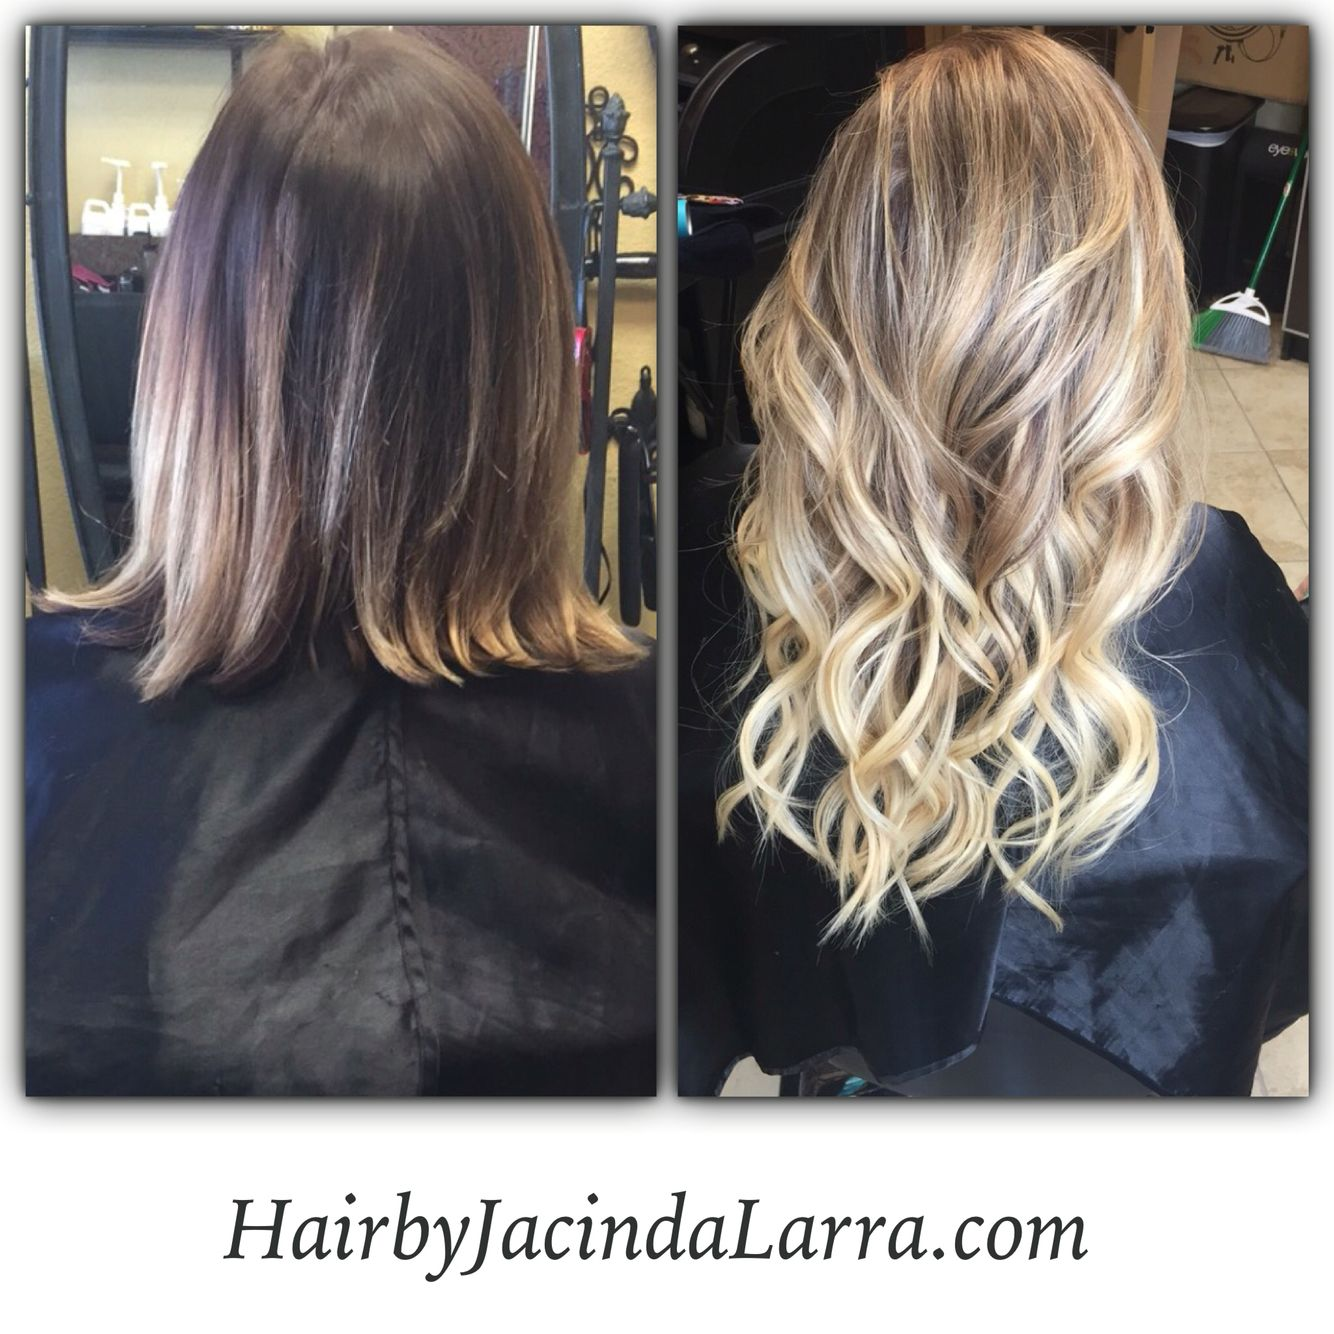 Dream Catcher Extensions Amusing Before And After Dreamcatchers Extensions  Hairbyjacindalarra Review